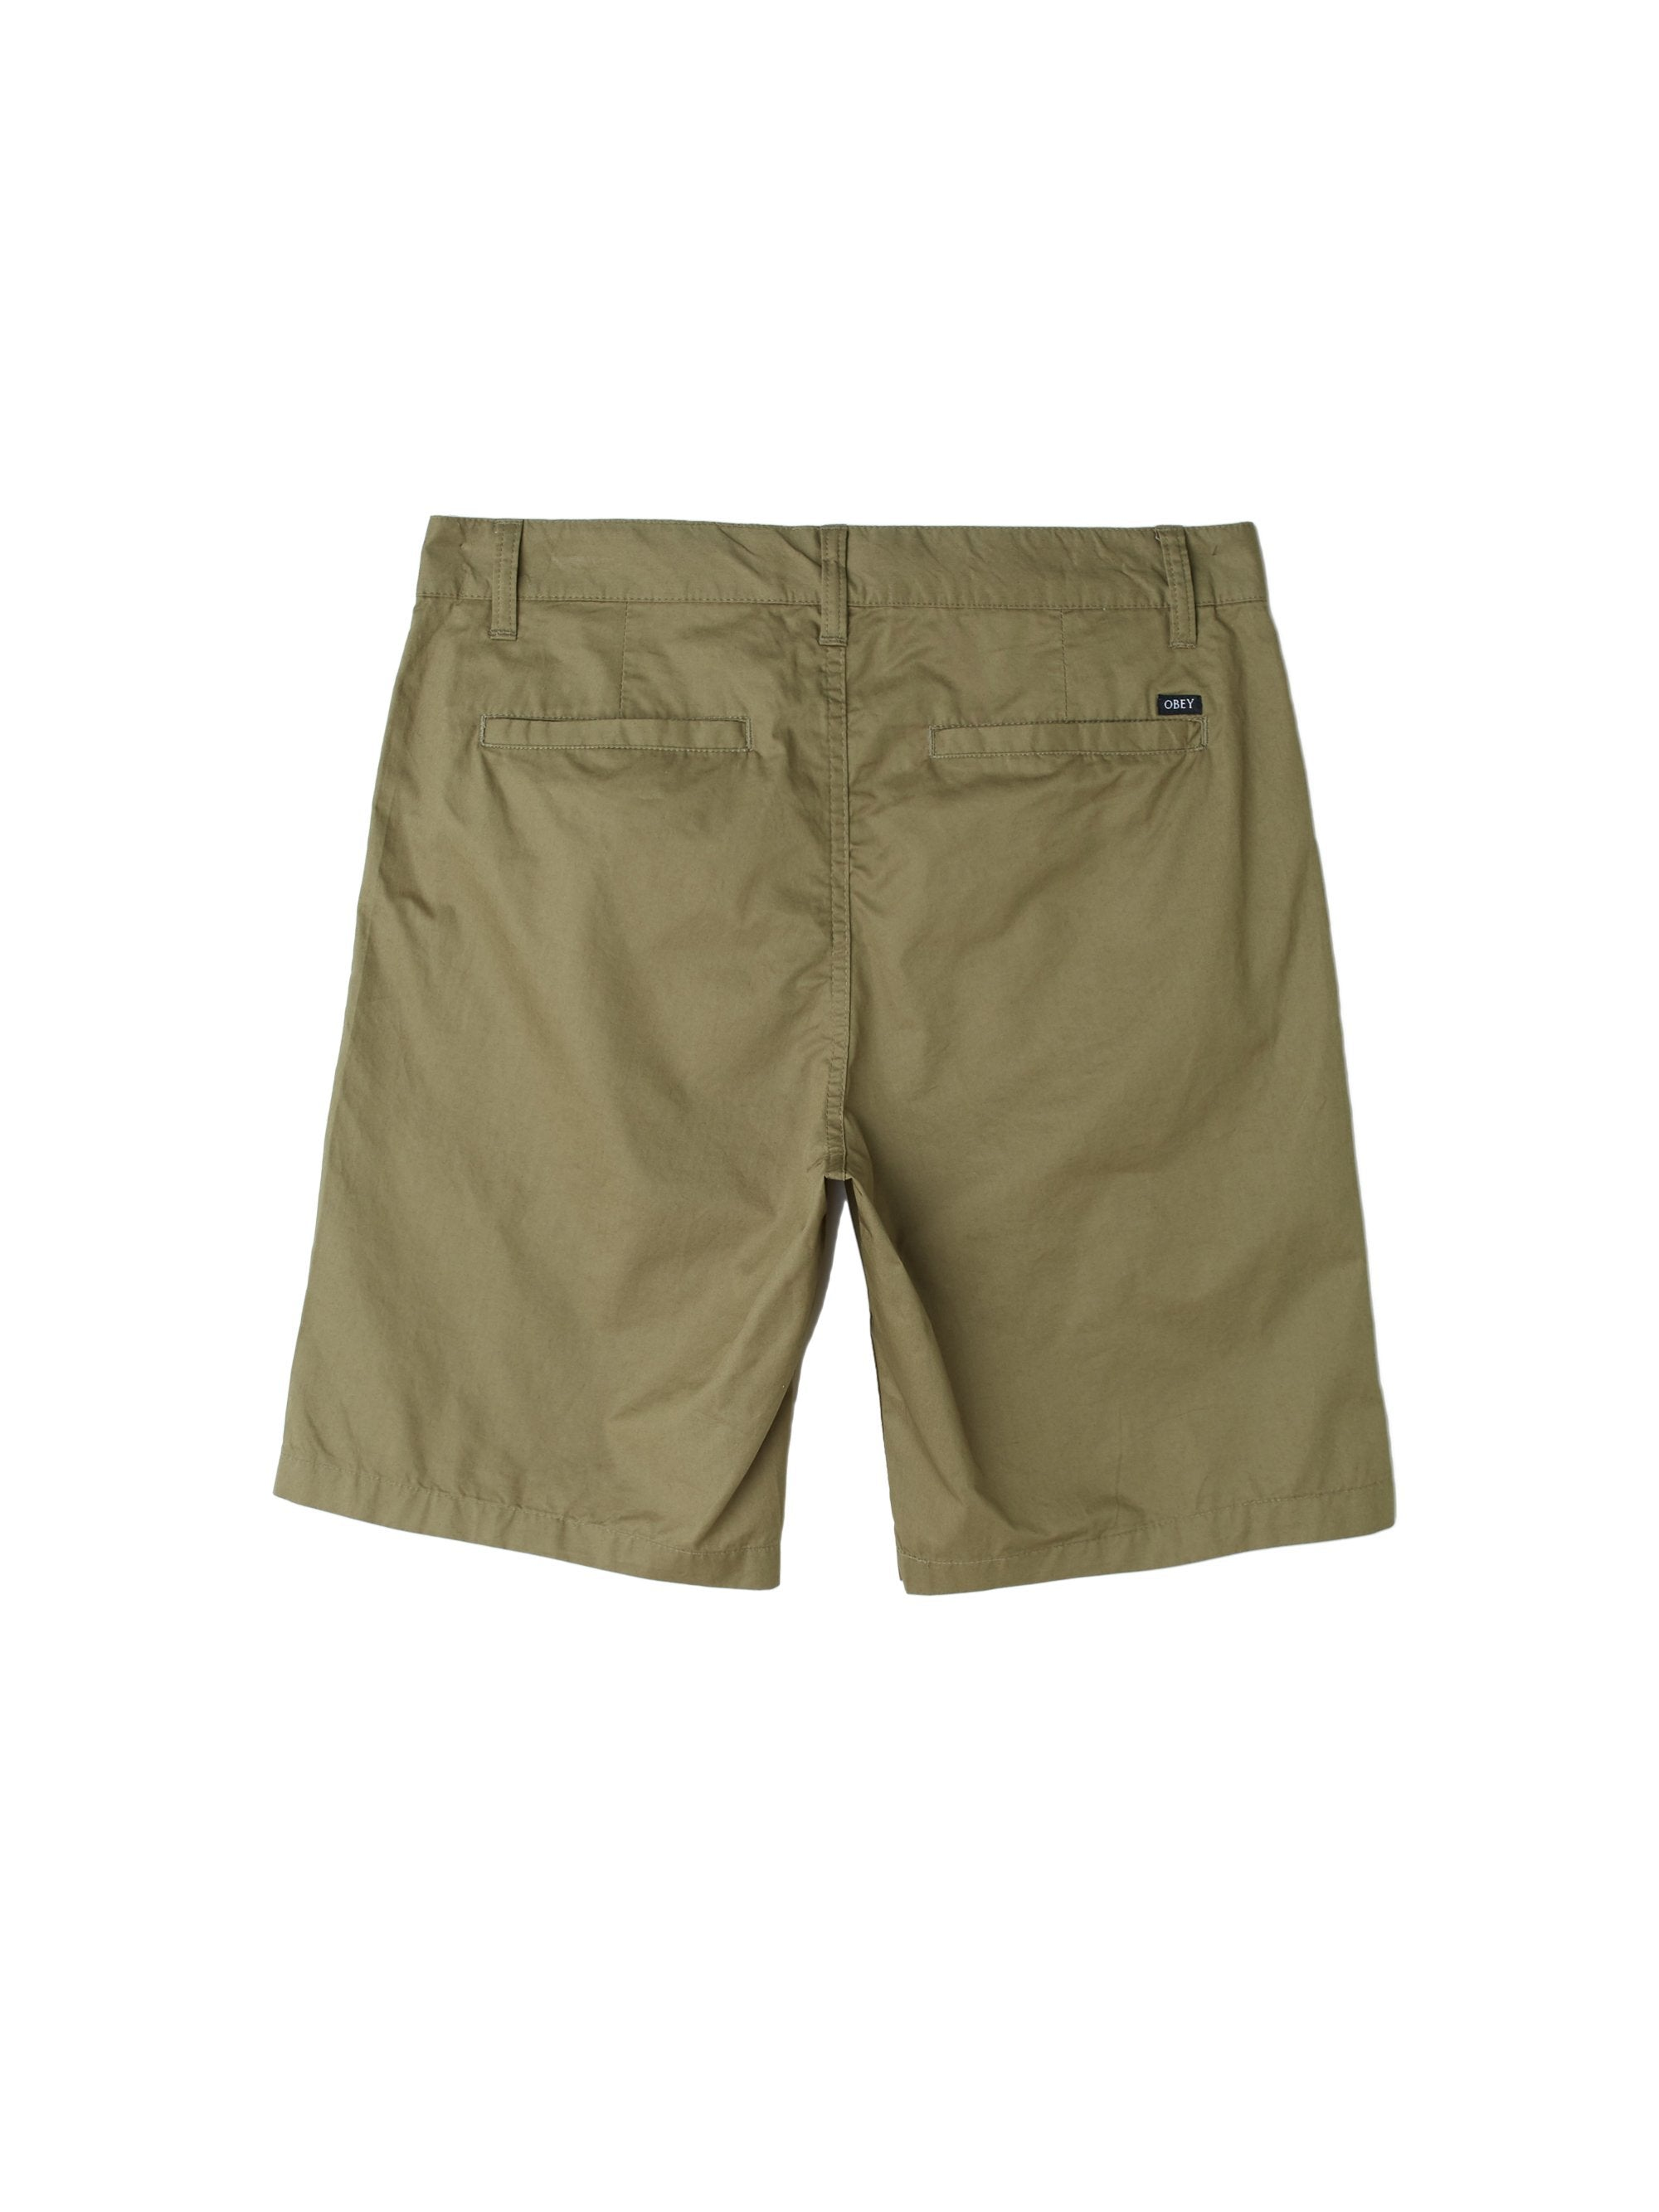 OBEY M'S SHORTS STRAGGLER LIGHT SHORT